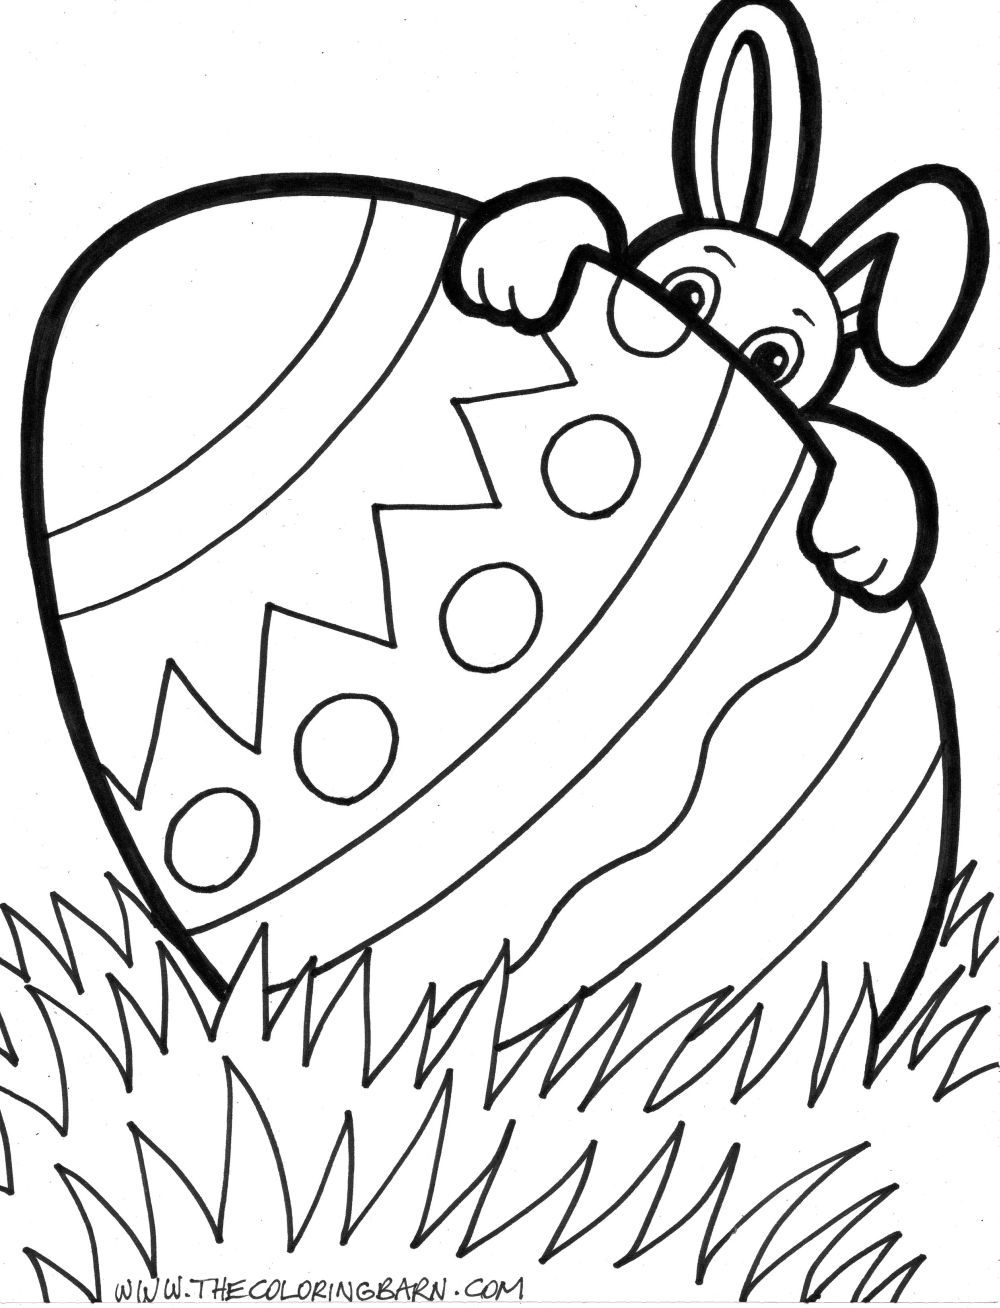 Easter Coloring Pages Easter Bunny Colouring Free Easter Coloring Pages Easter Coloring Pages Printable